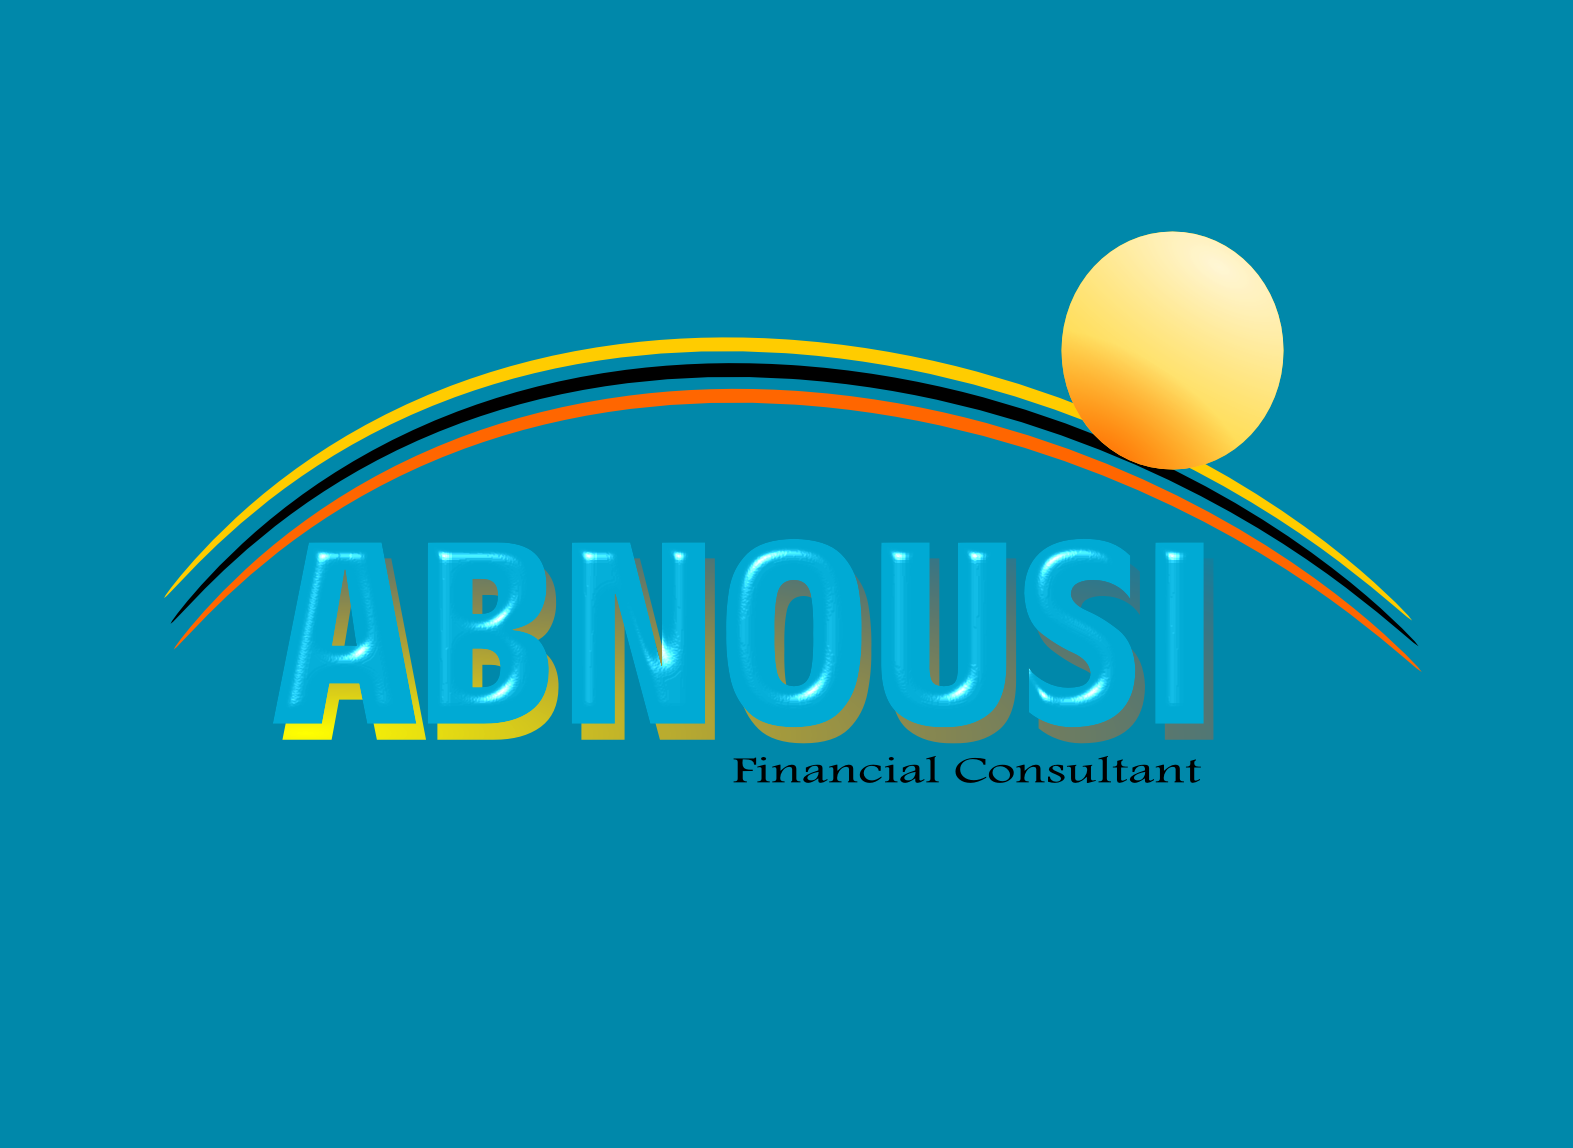 Logo Design by Joseph calunsag Cagaanan - Entry No. 170 in the Logo Design Contest Fun Logo Design for Abnousi Financial Consultants.